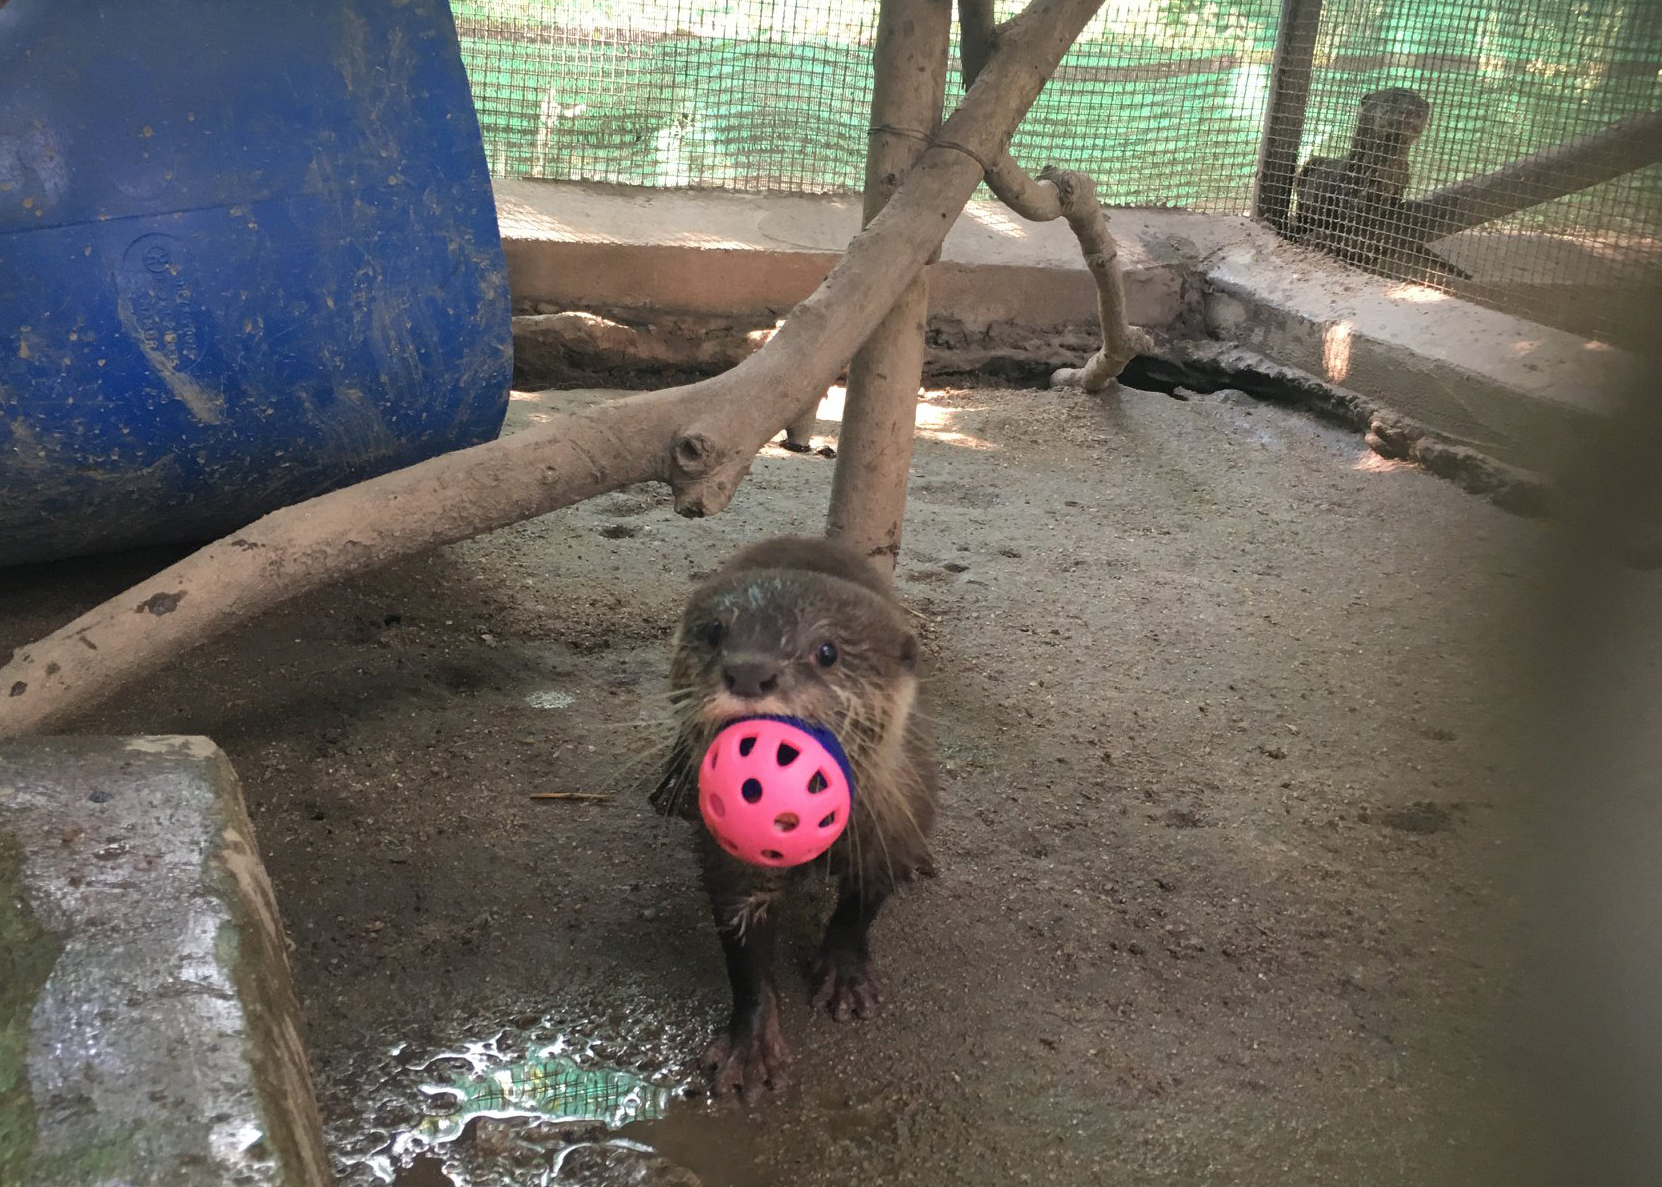 asian small clawed otter Asian small clawed otter is latest arrival at rescue center Asian Small clawed otter with enrichment toy ball